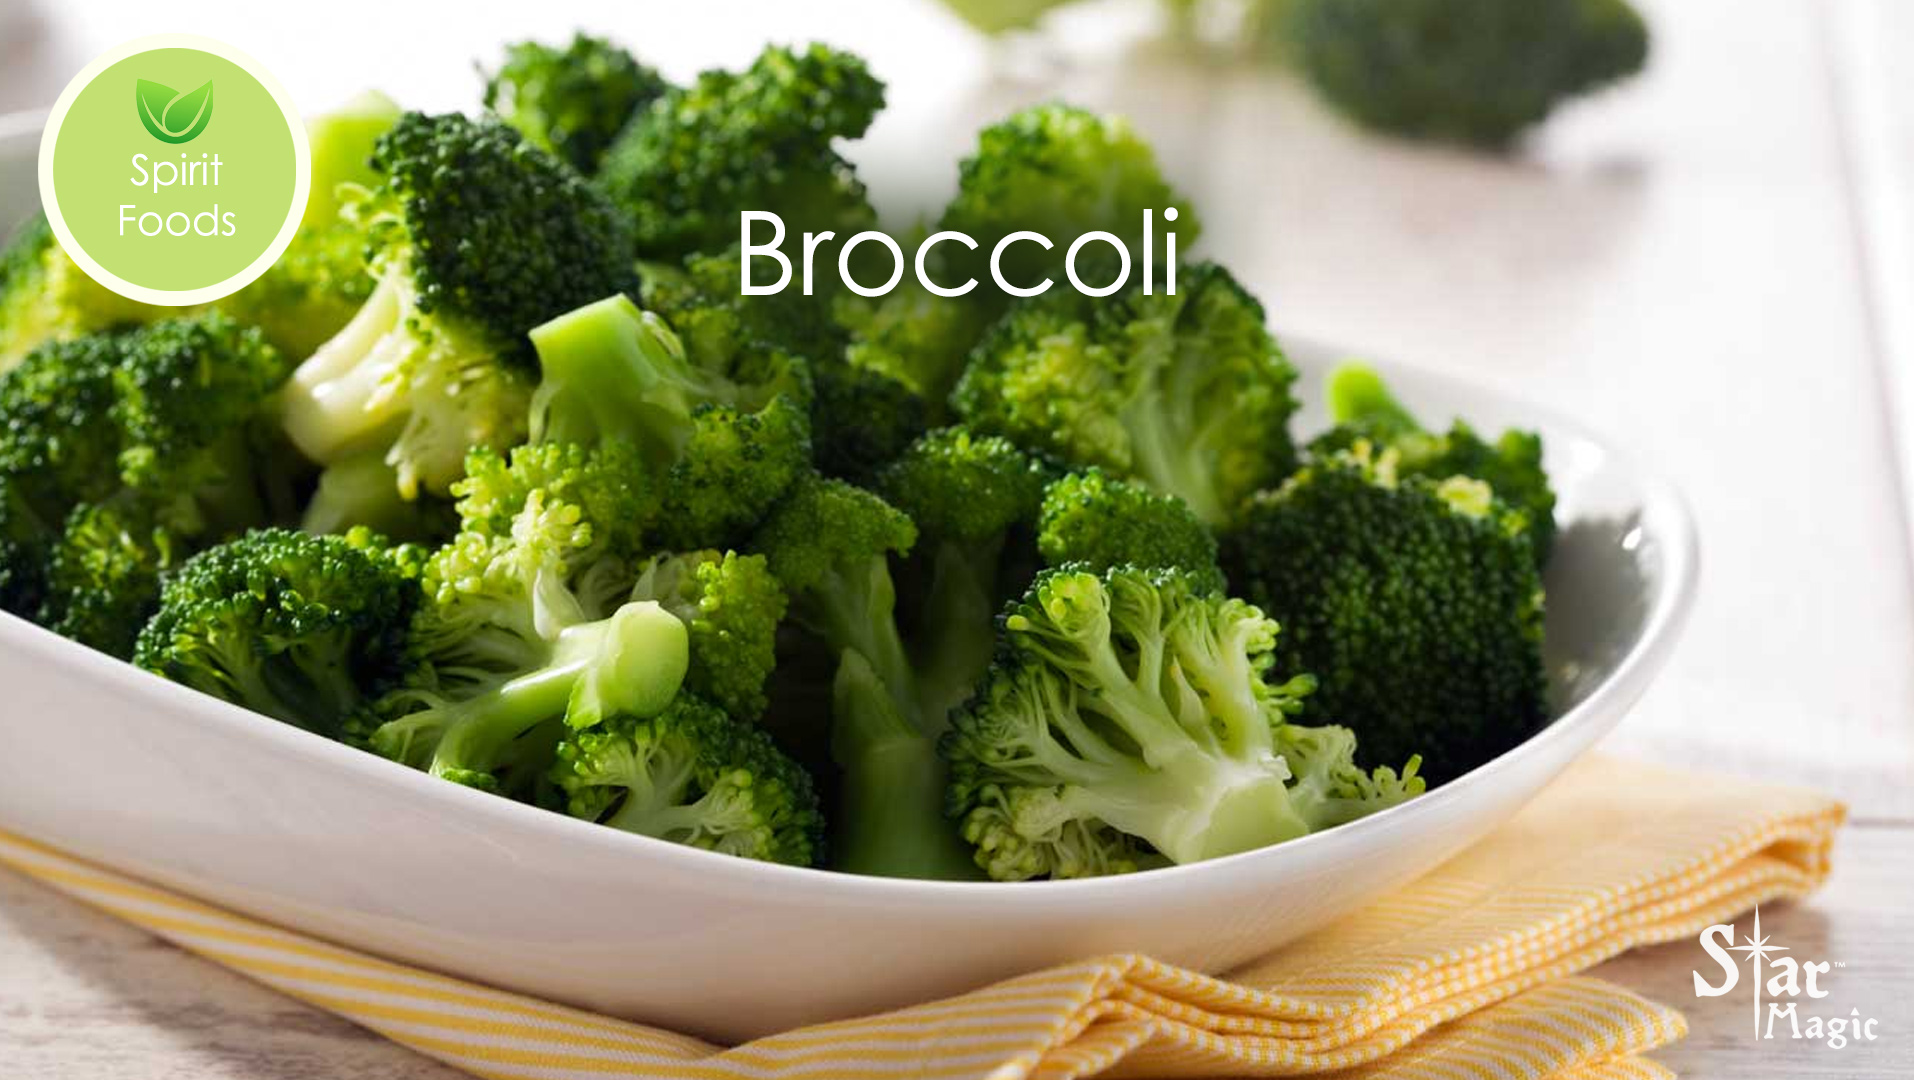 spirit food broccoli